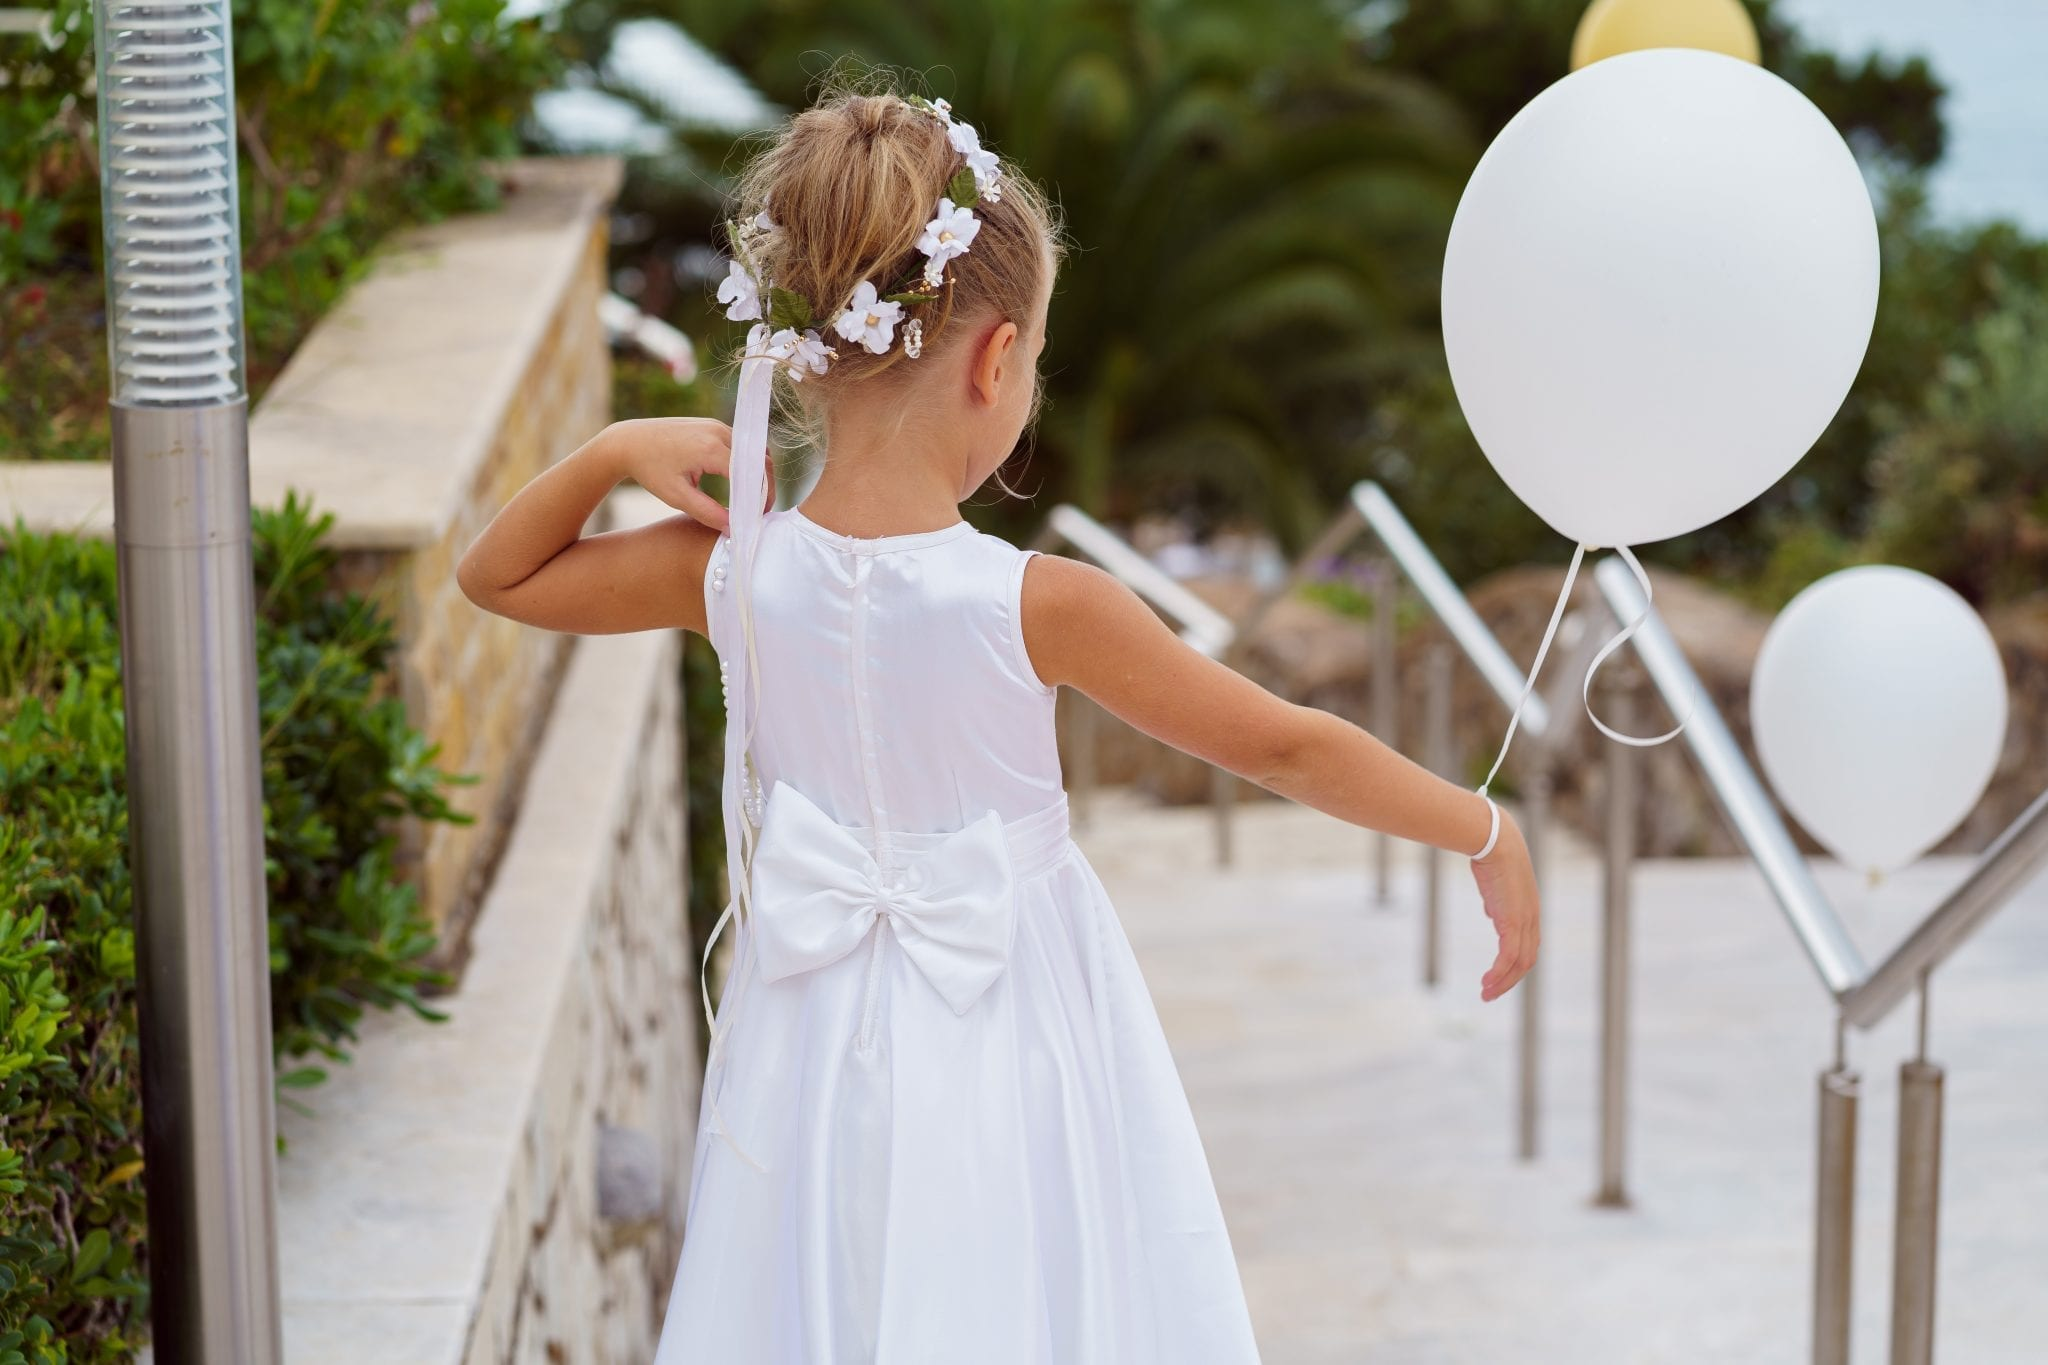 Documentary Wedding Photography - Child with Balloons